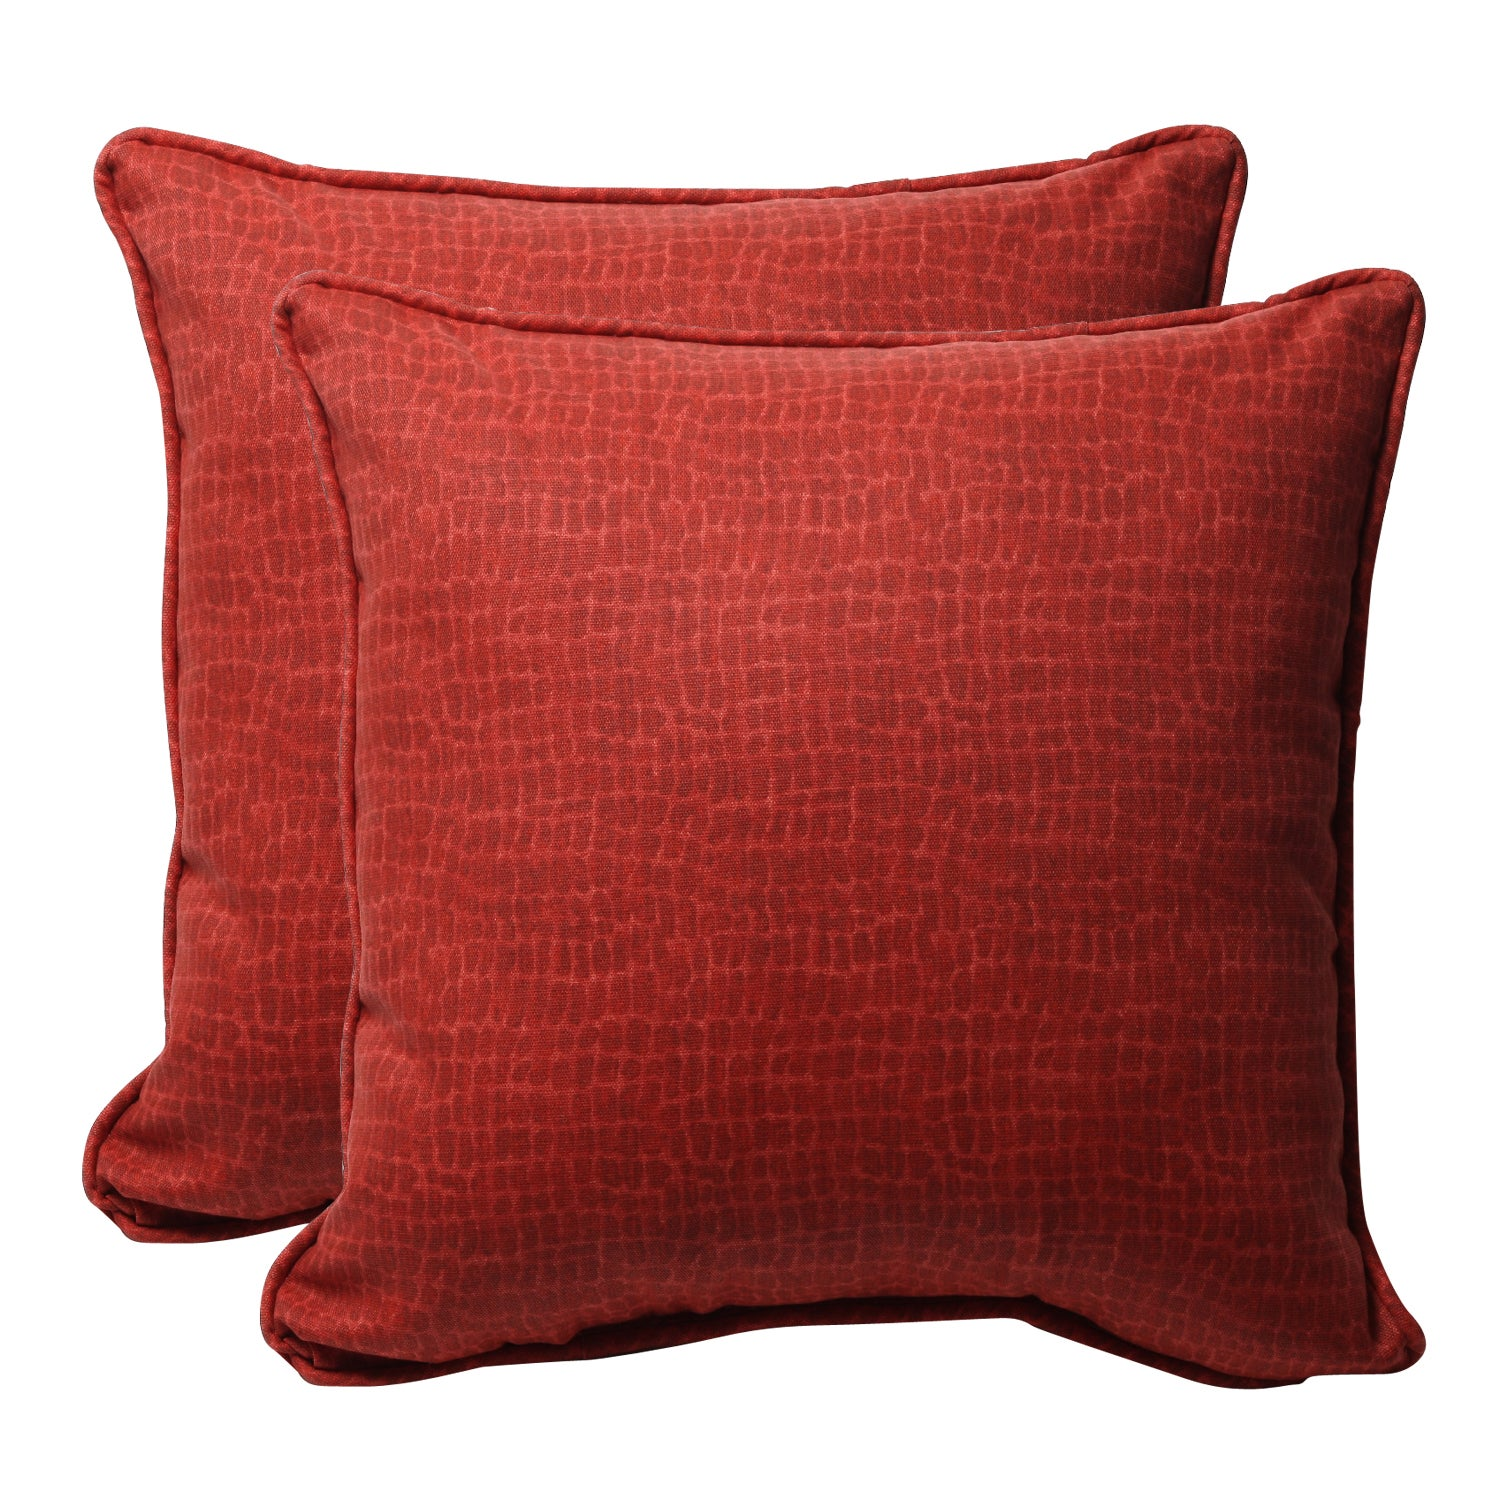 Decorative Red Animal Print Square Outdoor Toss Pillows (Set of 2)